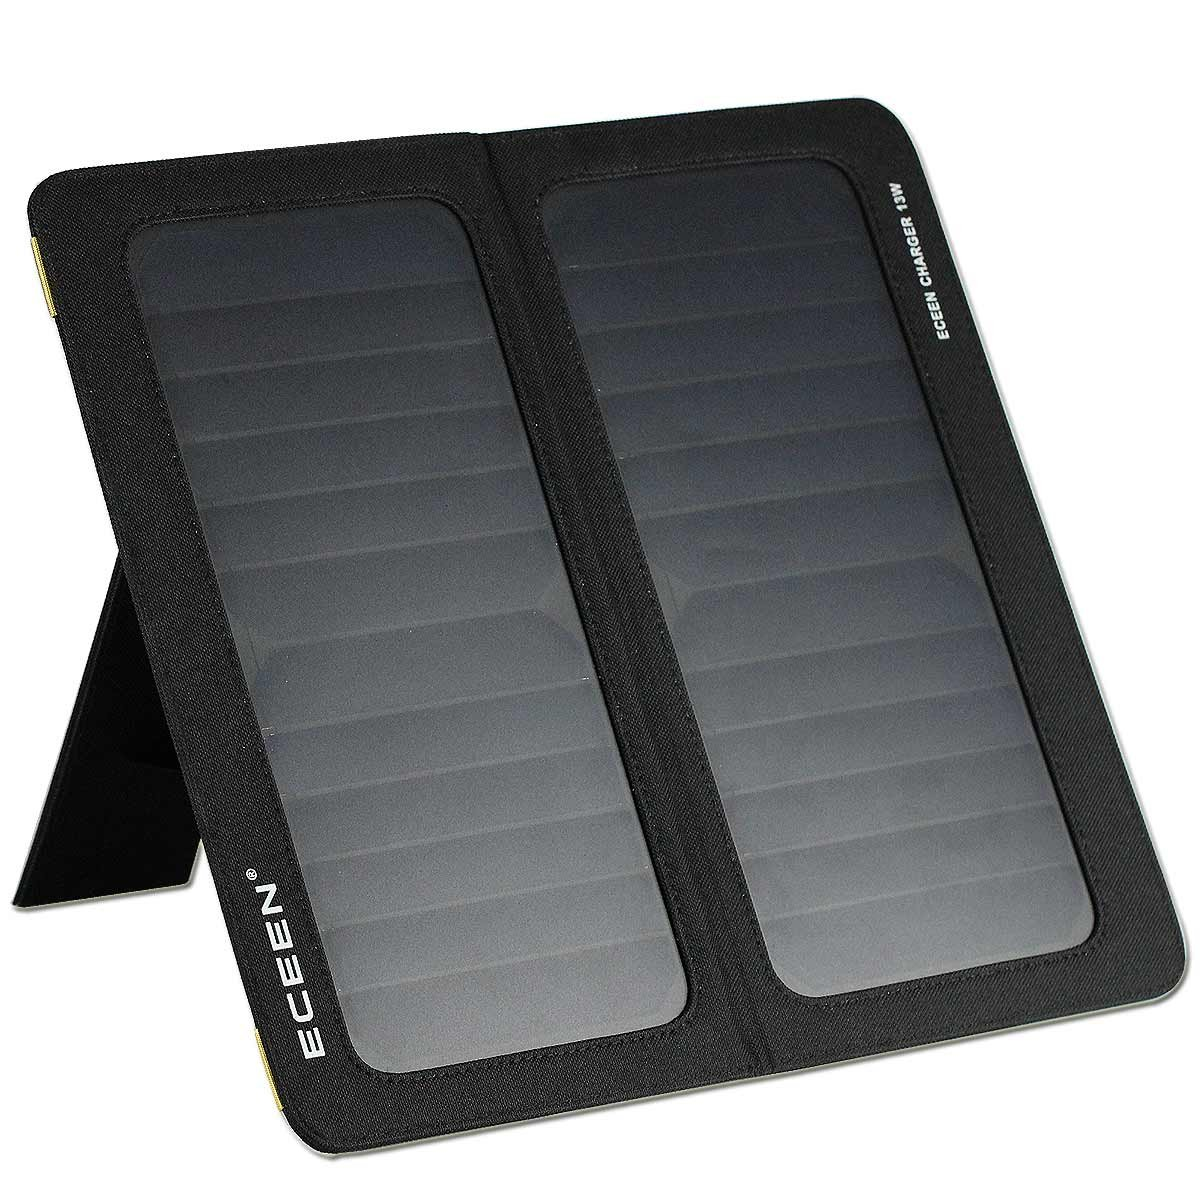 ECEEN ECC-626 13W Universal Foldable Solar Charger with Dual USB